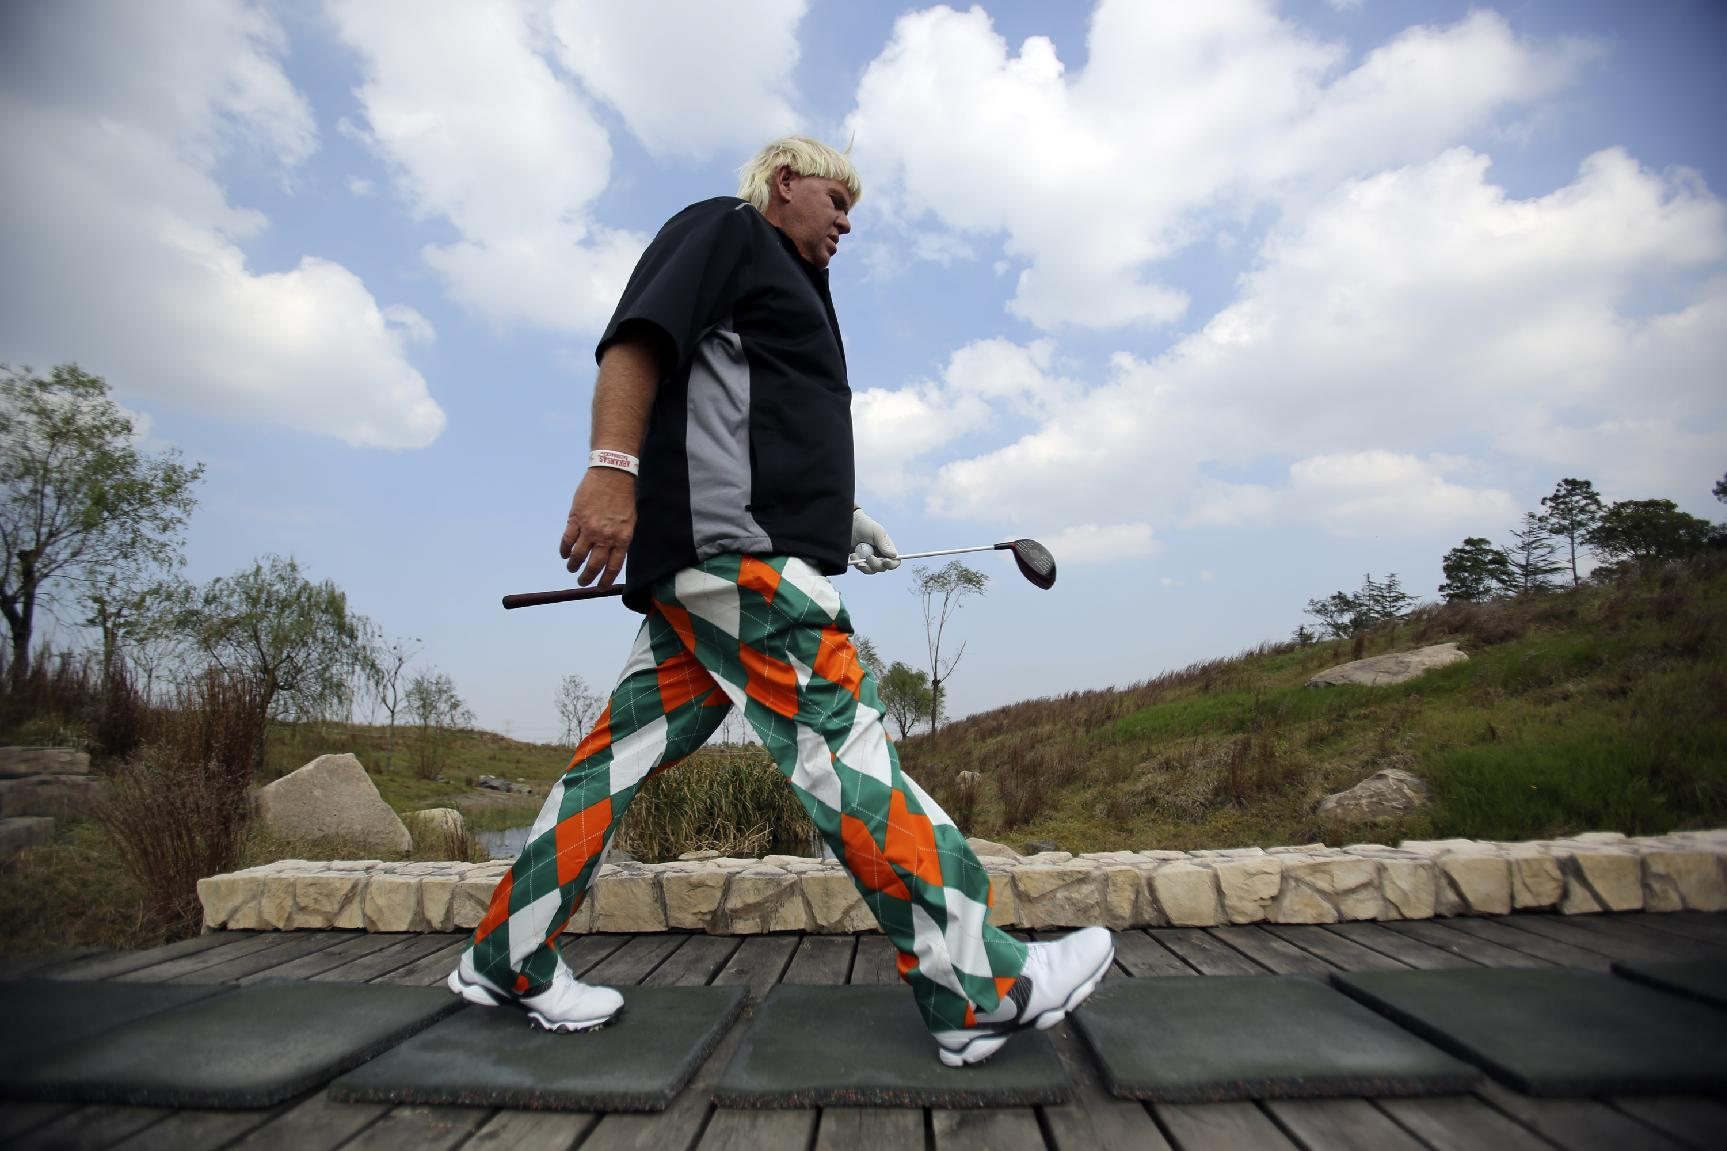 John Daly of the U.S. walks toward to the 3rd hole during a pro-am competition ahead of the BMW Masters golf tournament at the Lake Malaren Golf Club in Shanghai, China, Wednesday, Oct. 23, 2013. The European Tour event will begin on Oct. 24